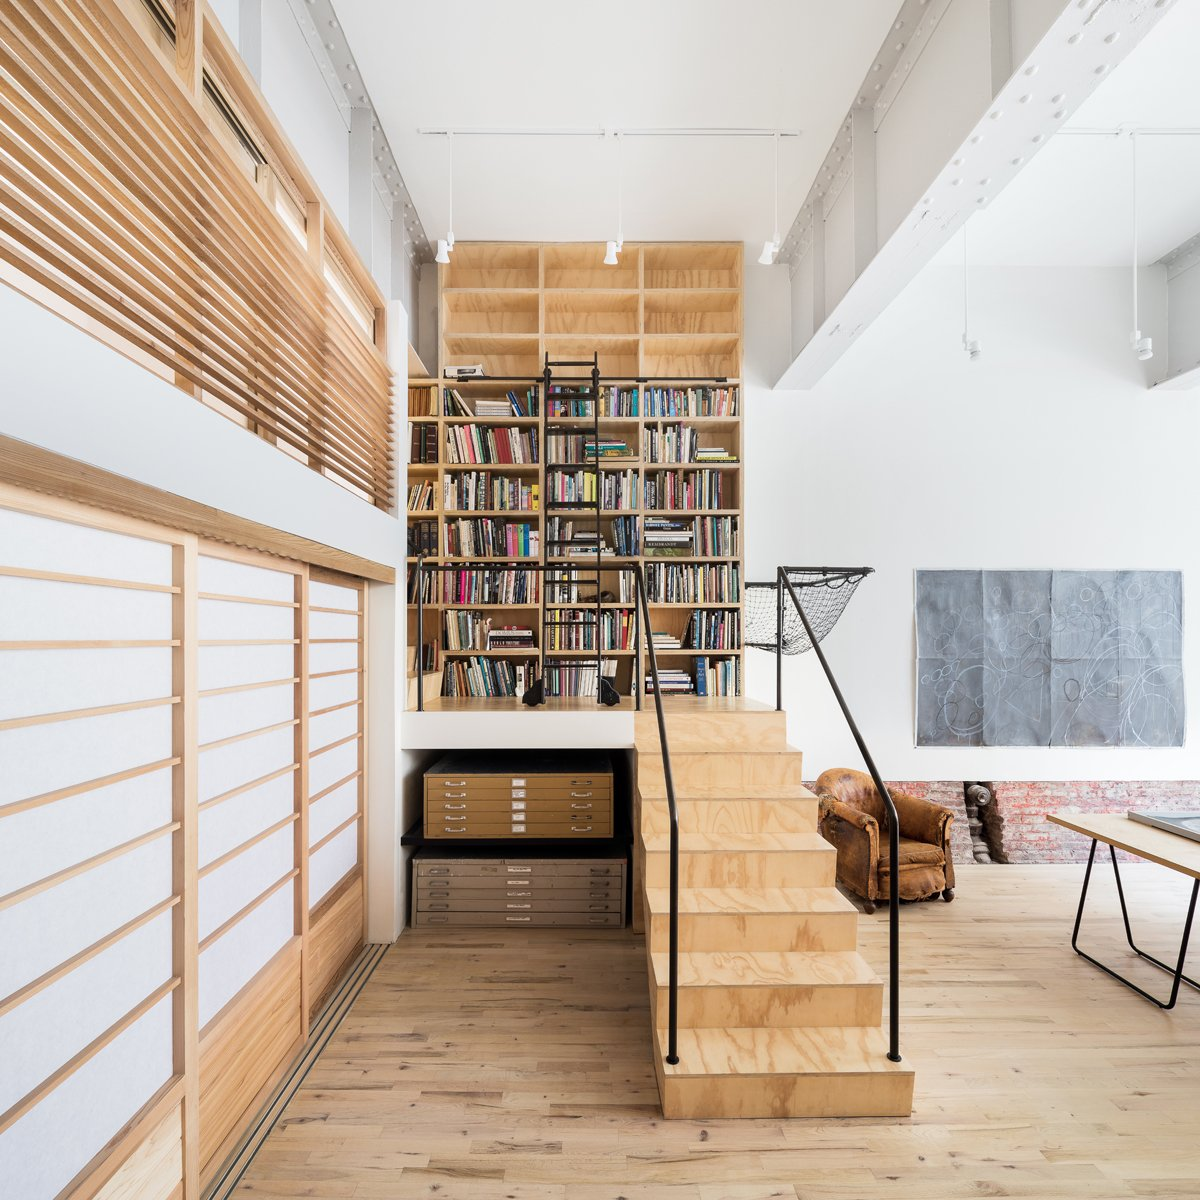 Studio space and stair Tagged: Office, Library, Craft Room, Study, Chair, Light Hardwood Floor, Bookcase, and Shelves.  Wells Fargo Loft by Jeff Jordan Architects